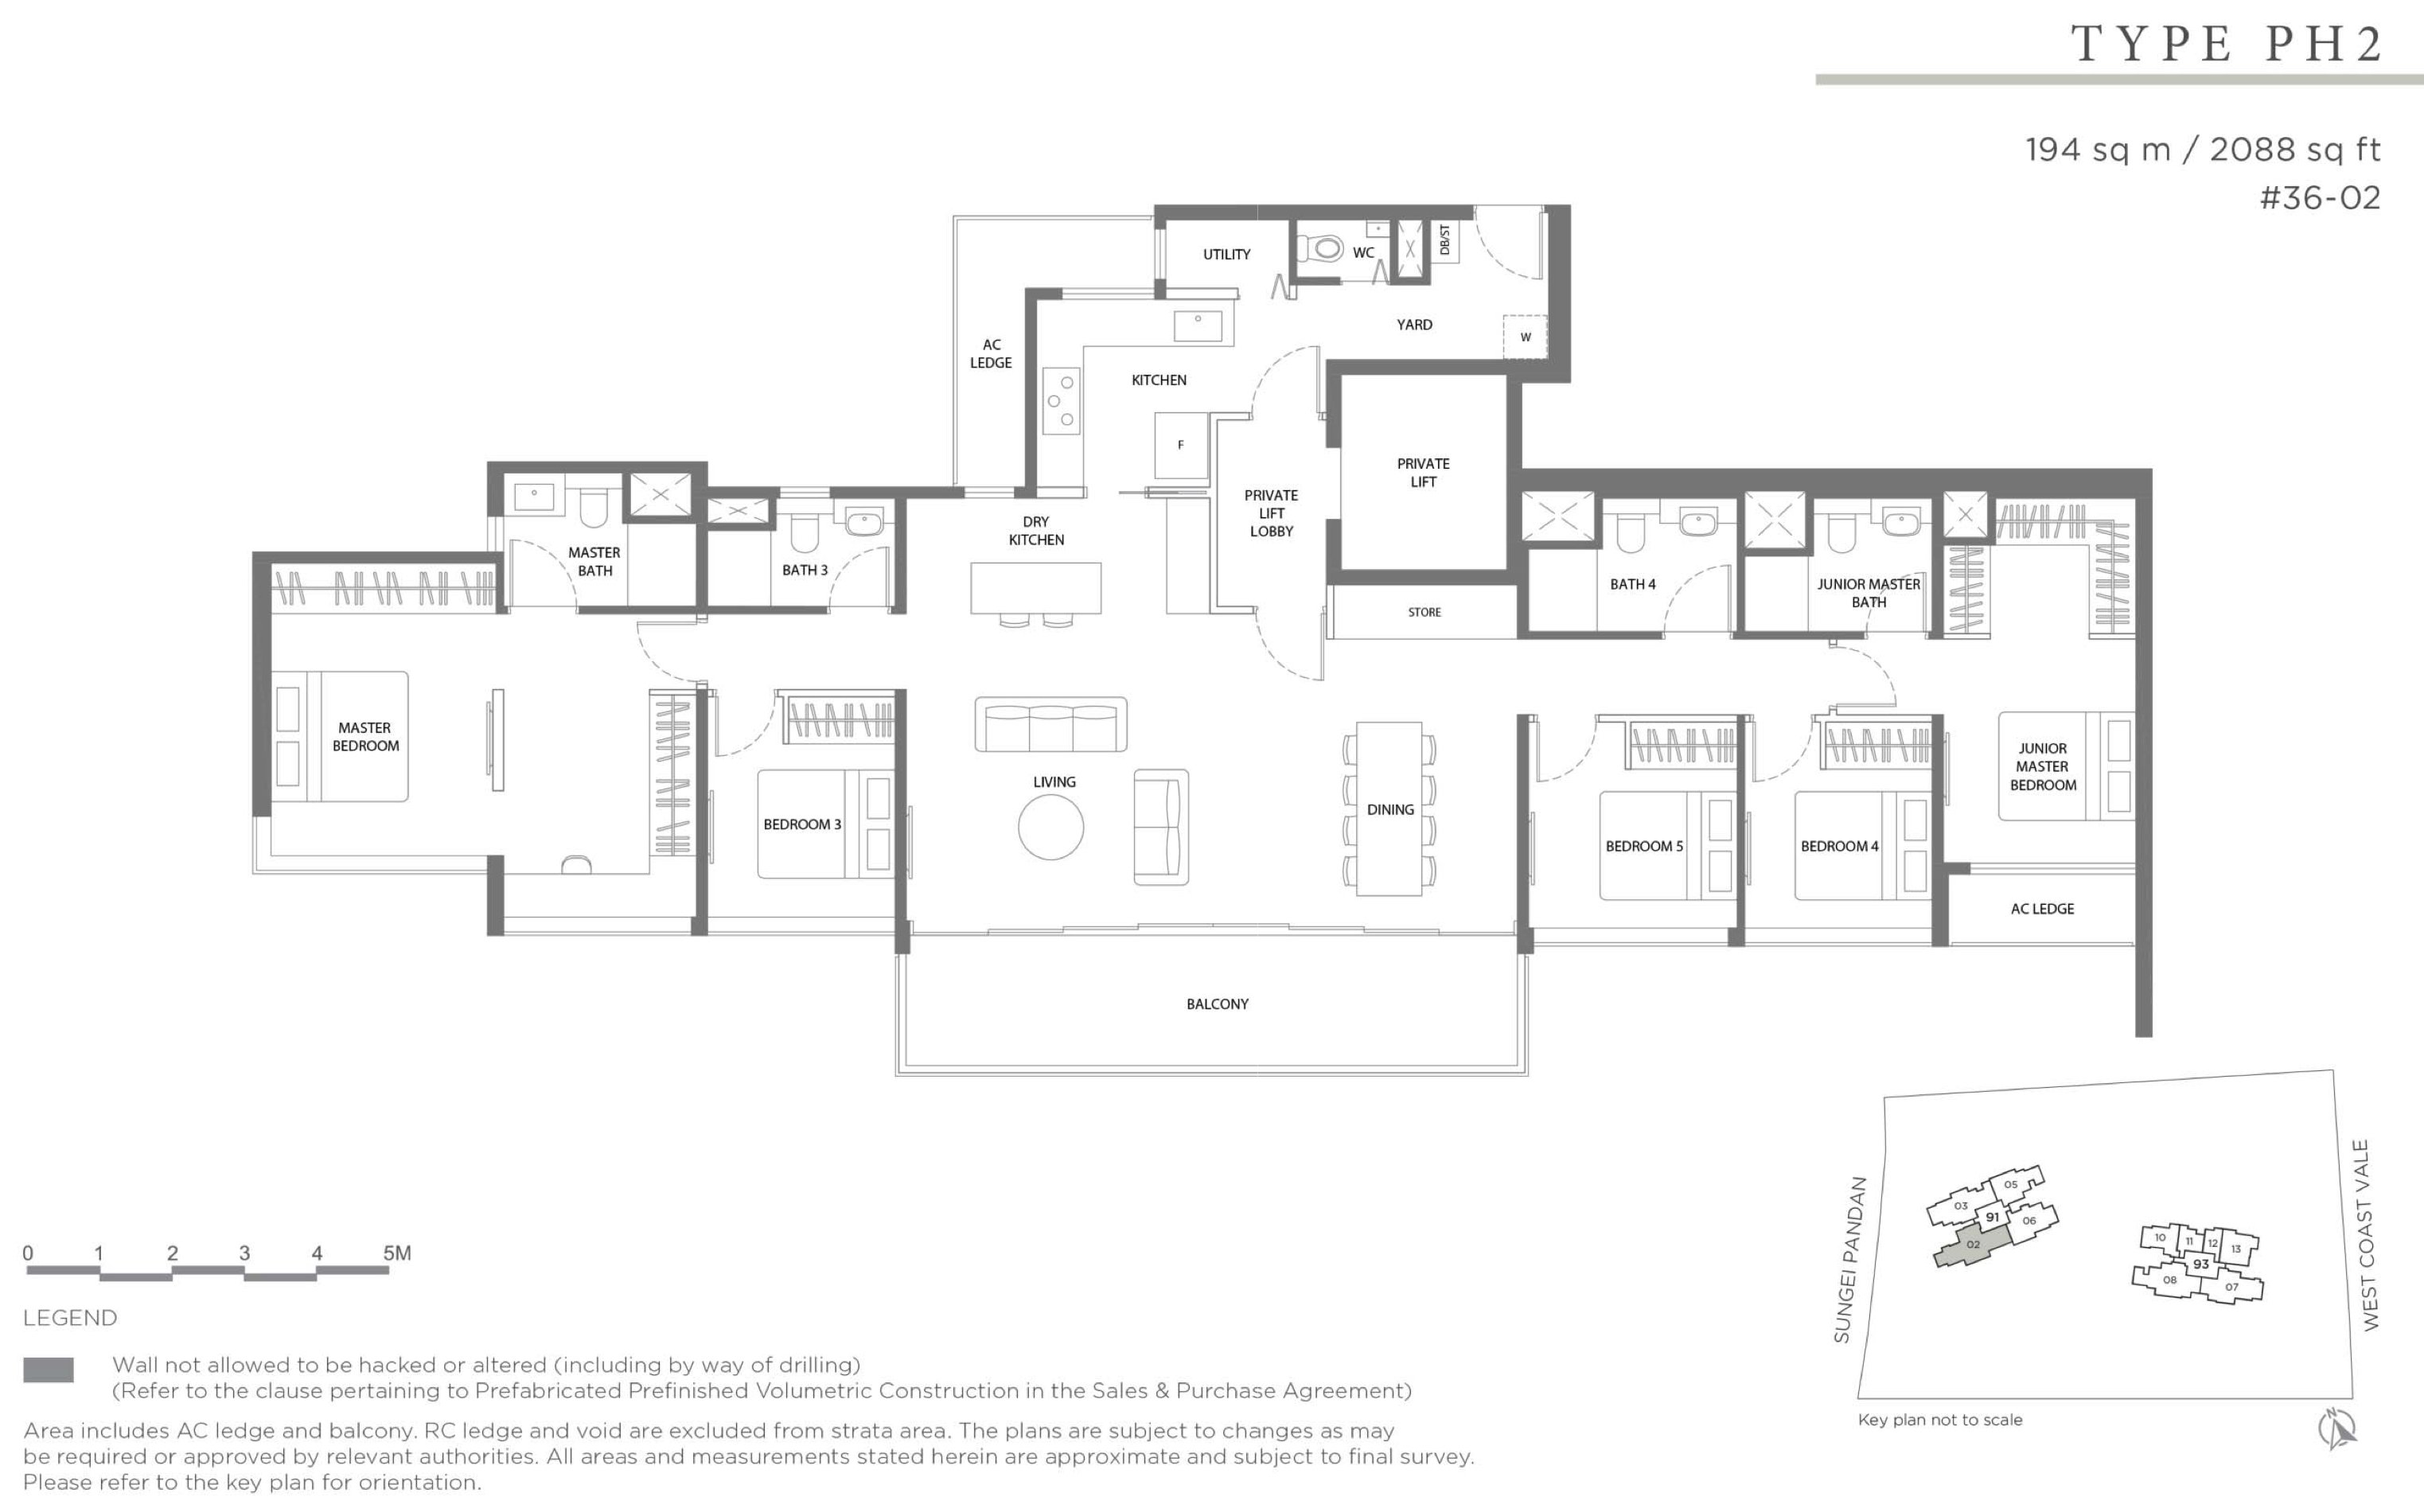 Twin VEW 5 bedroom private lift penthouse PH2 floor plan